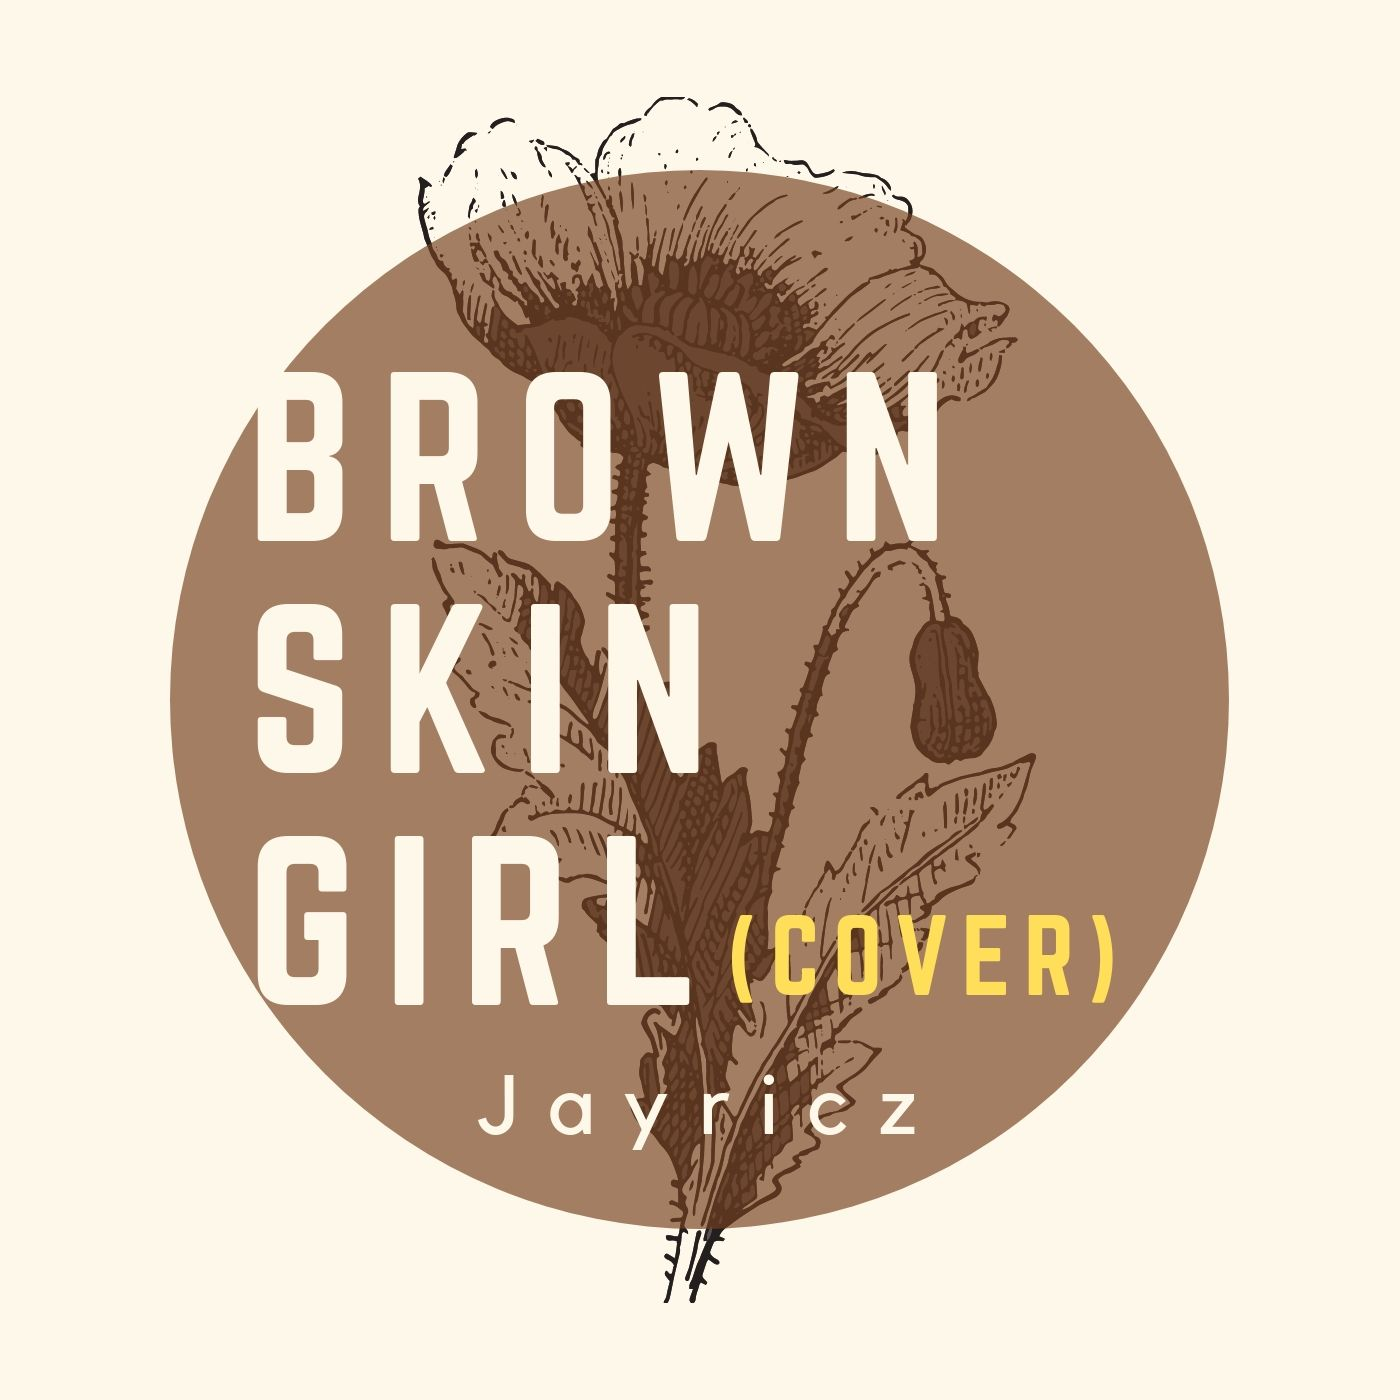 brown skin girl cover by jayricz